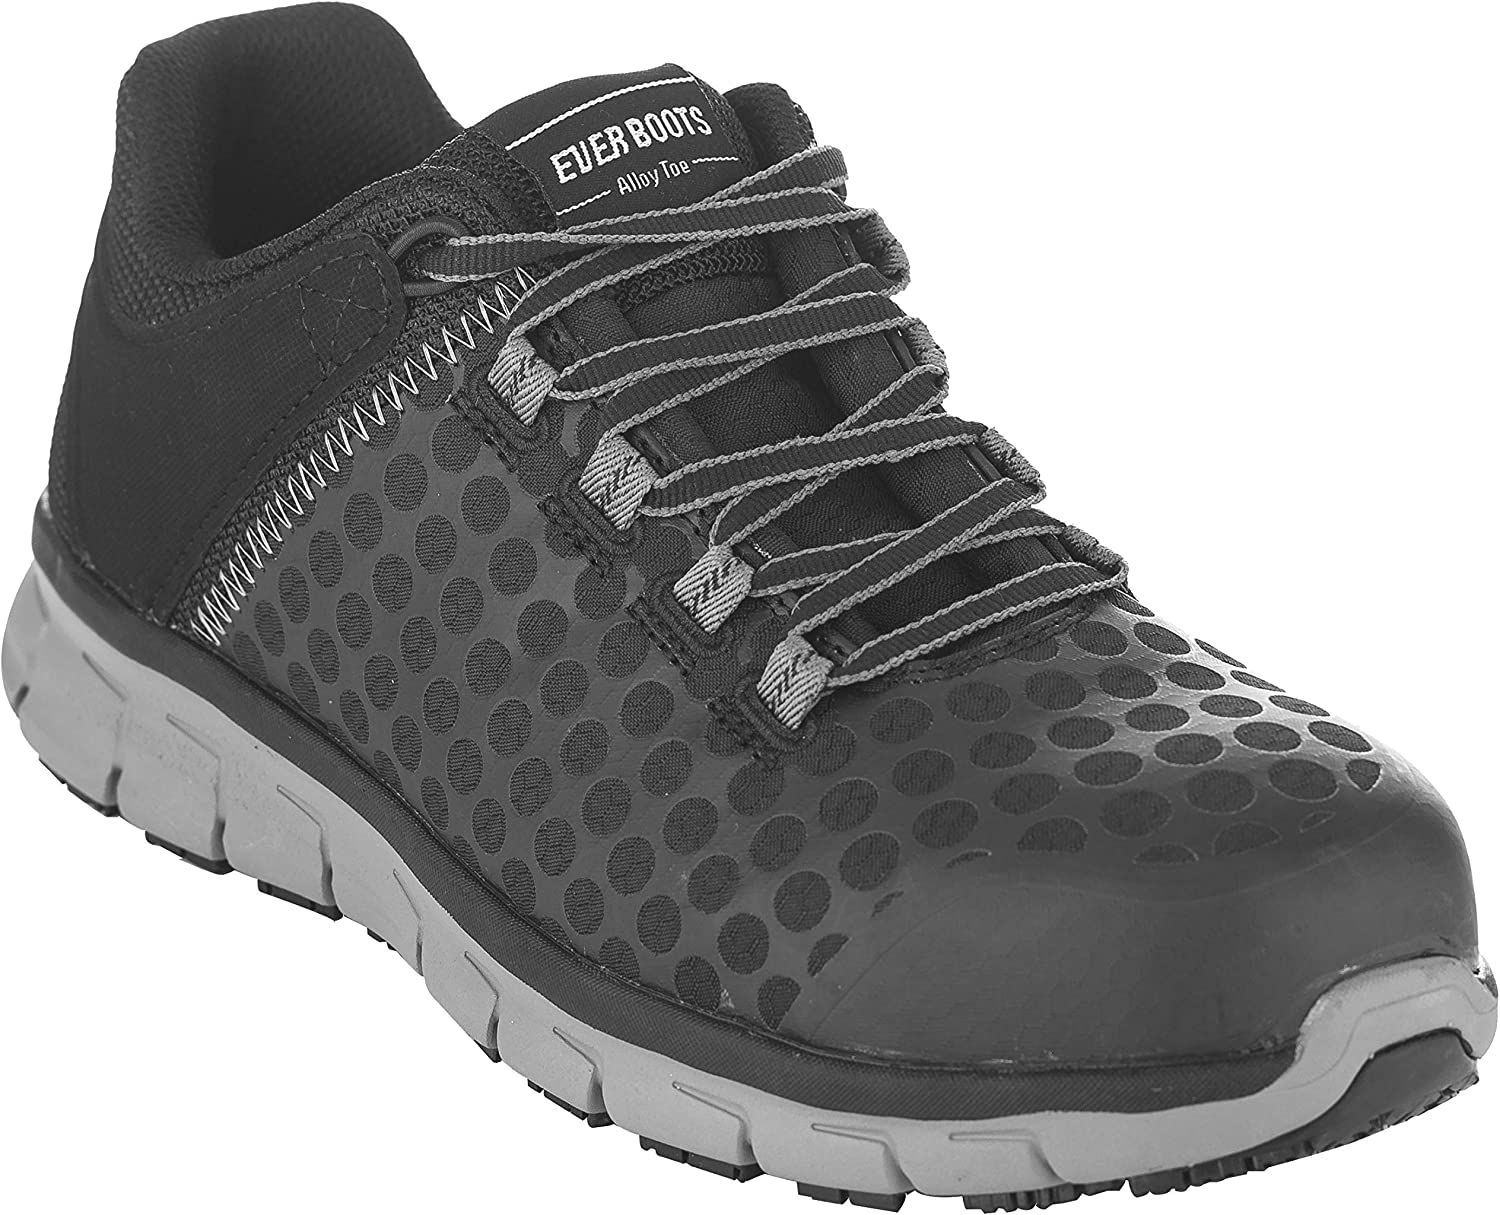 EVER BOOTS Steel Toe Men's Safety Work